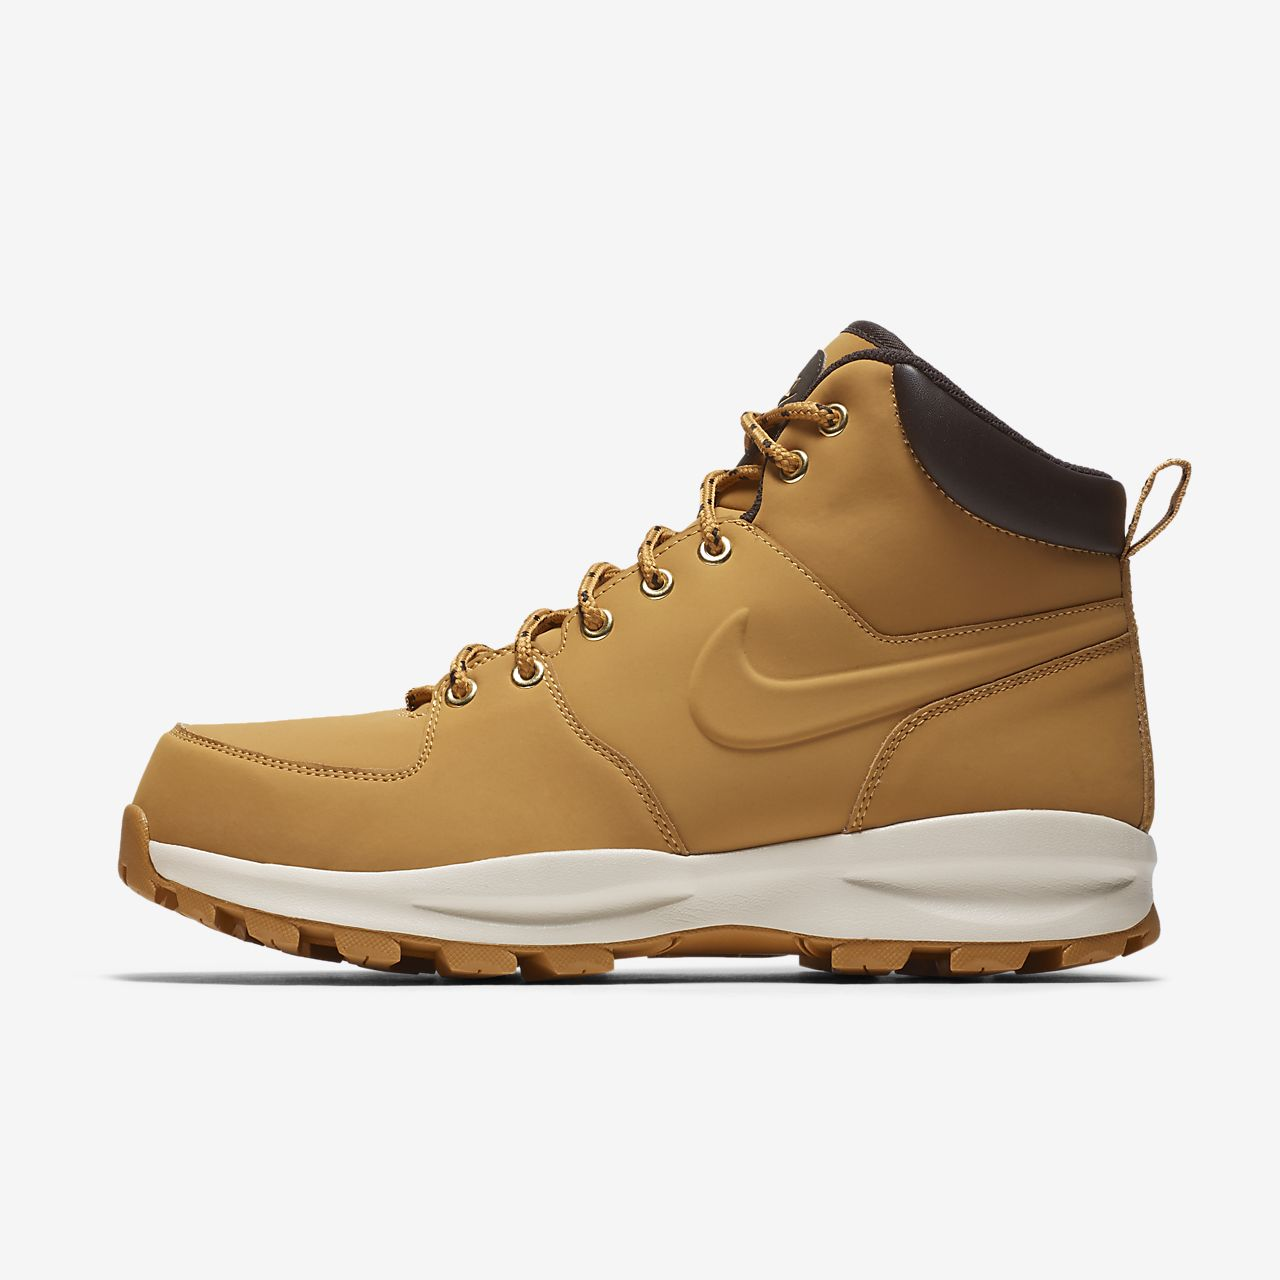 b554e648be7da6 Nike Manoa Men s Boot. Nike.com GB